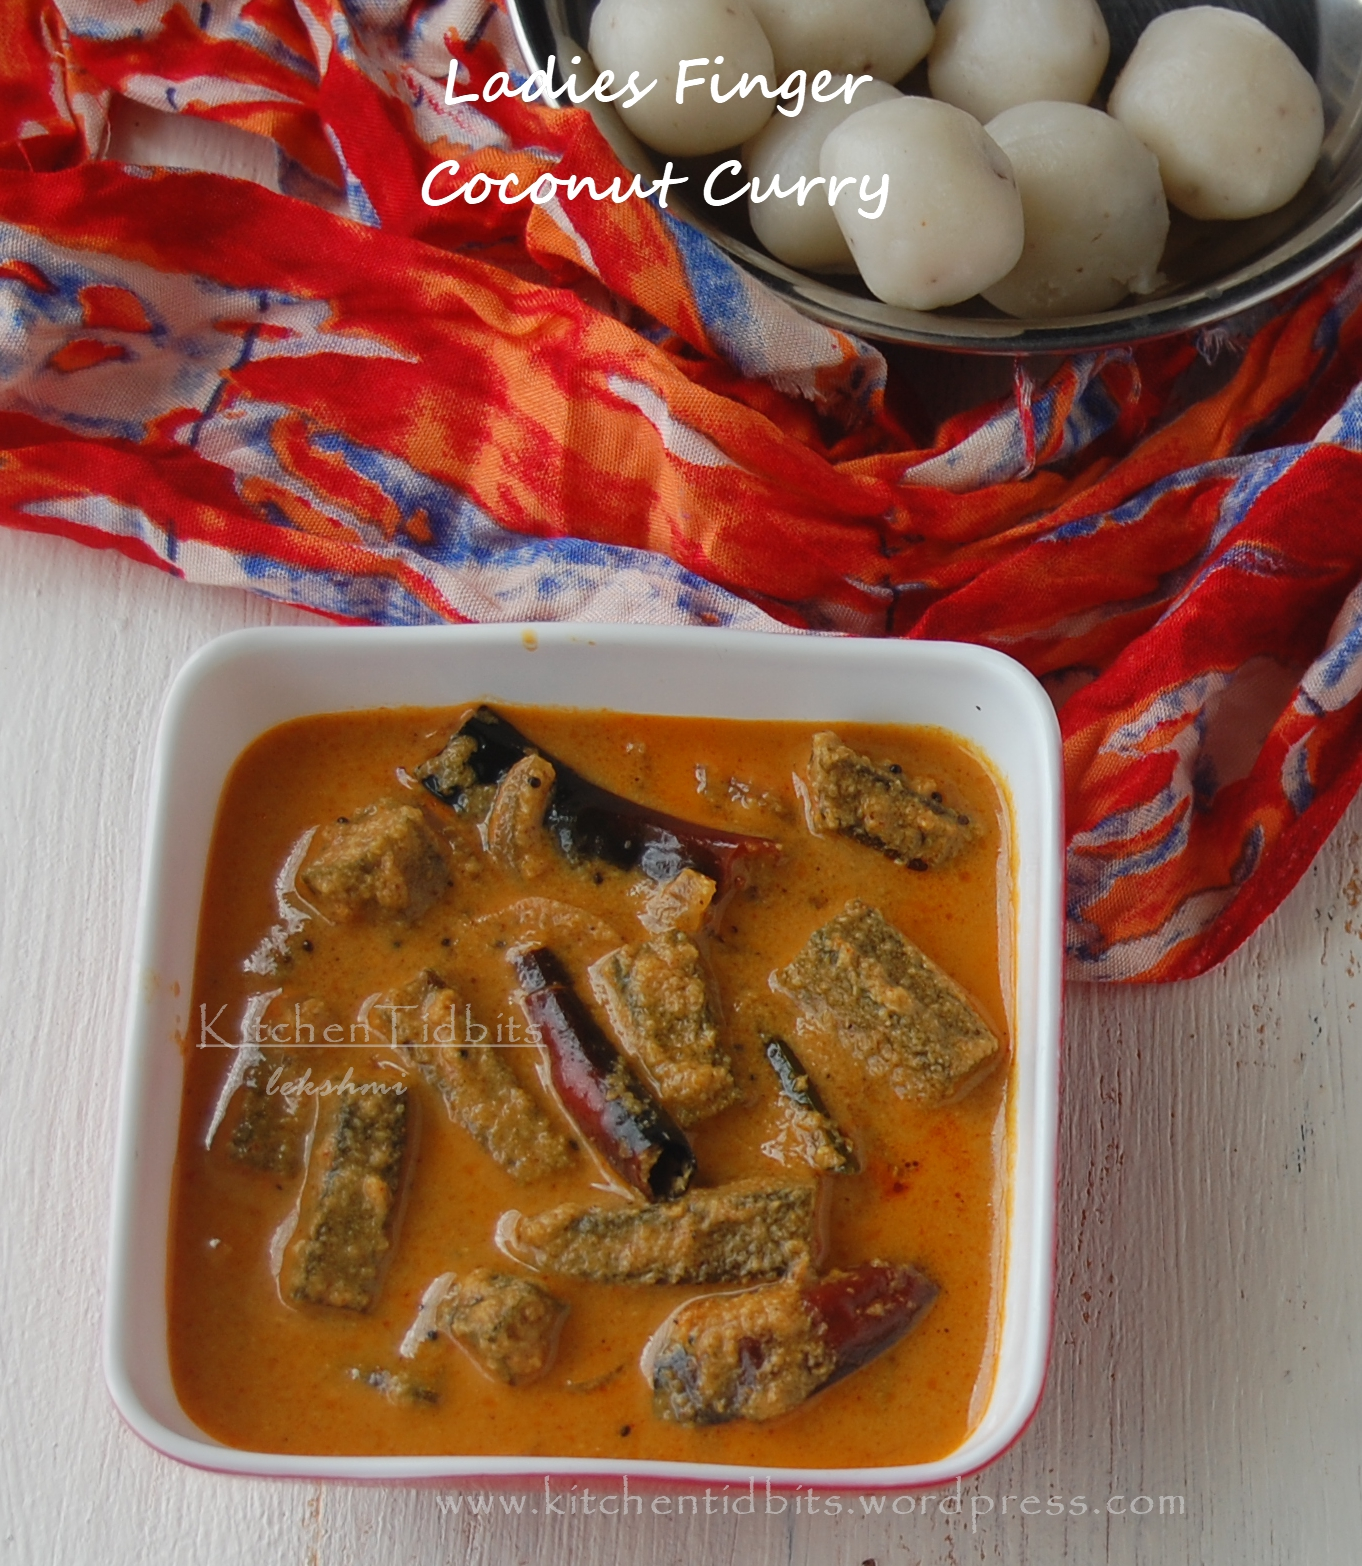 Vendakka Curry/Ladies Finger coconut curry